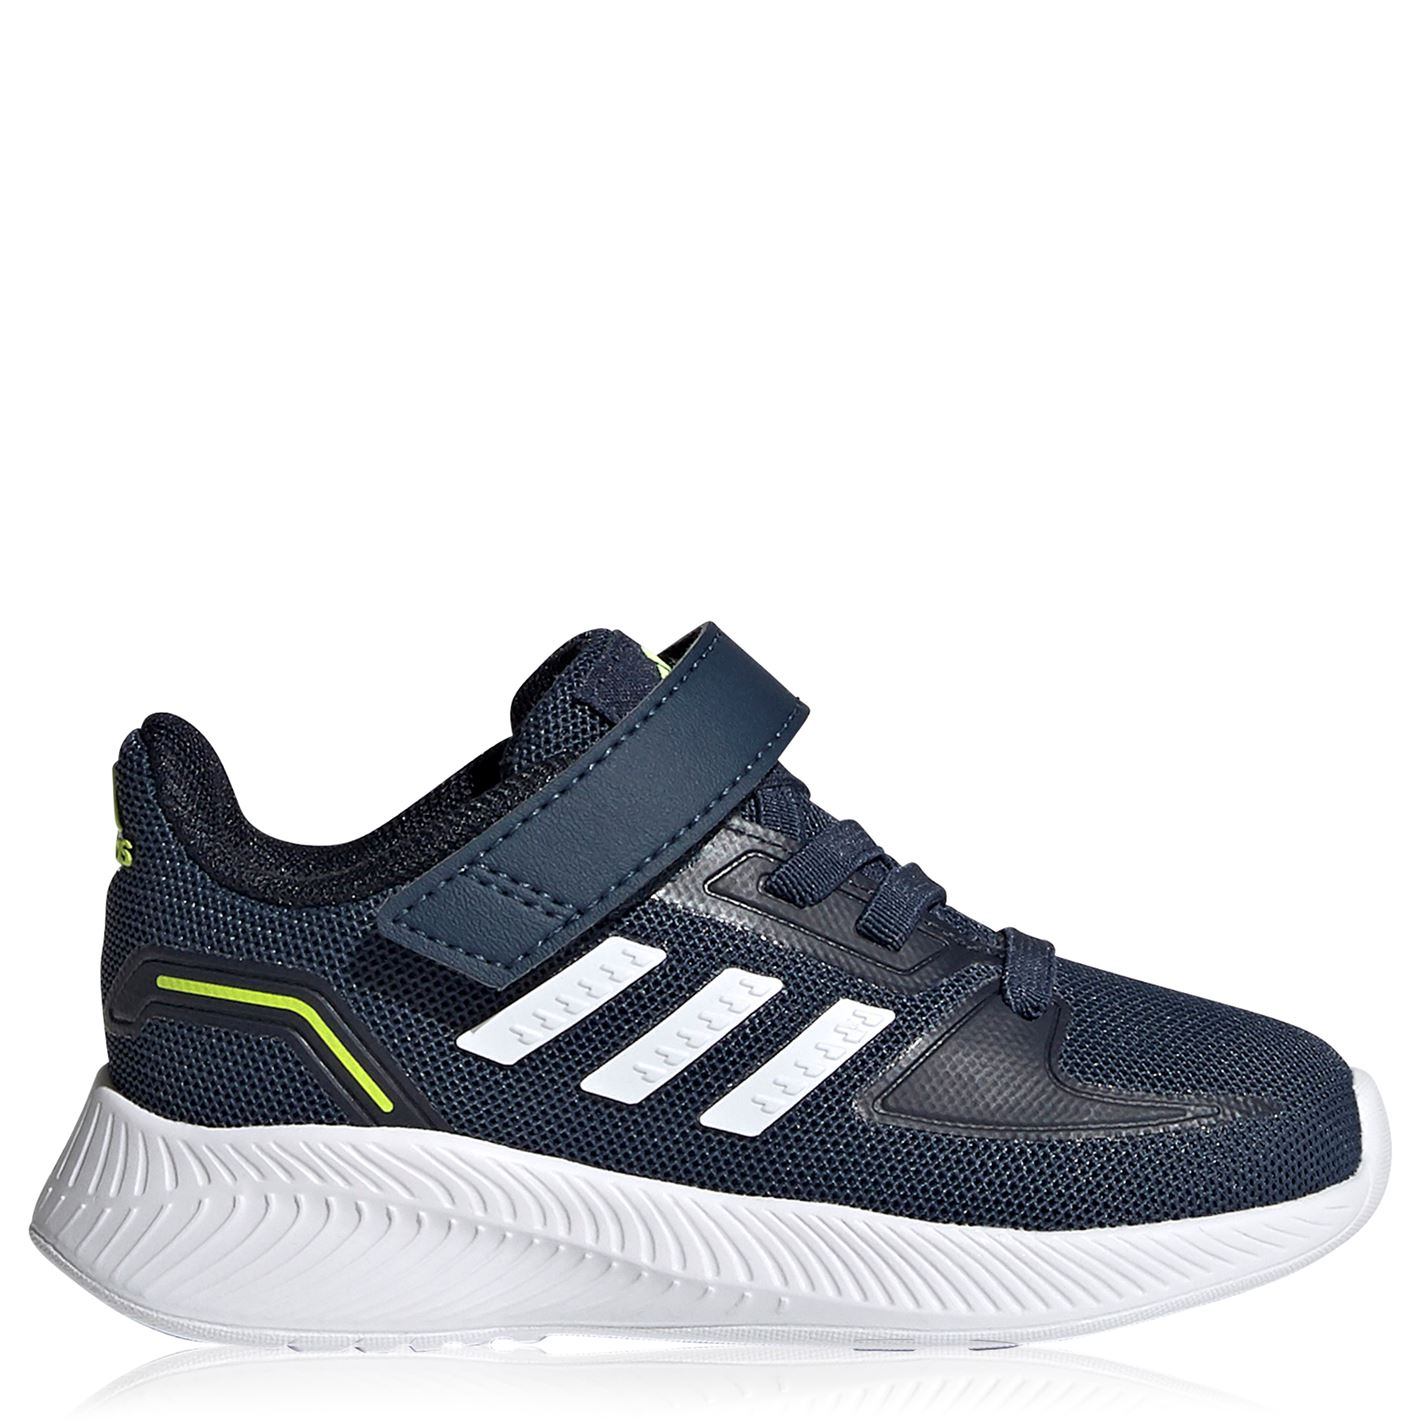 adidas Runfalcon 2 Running Shoes Infant Boys Navy/White